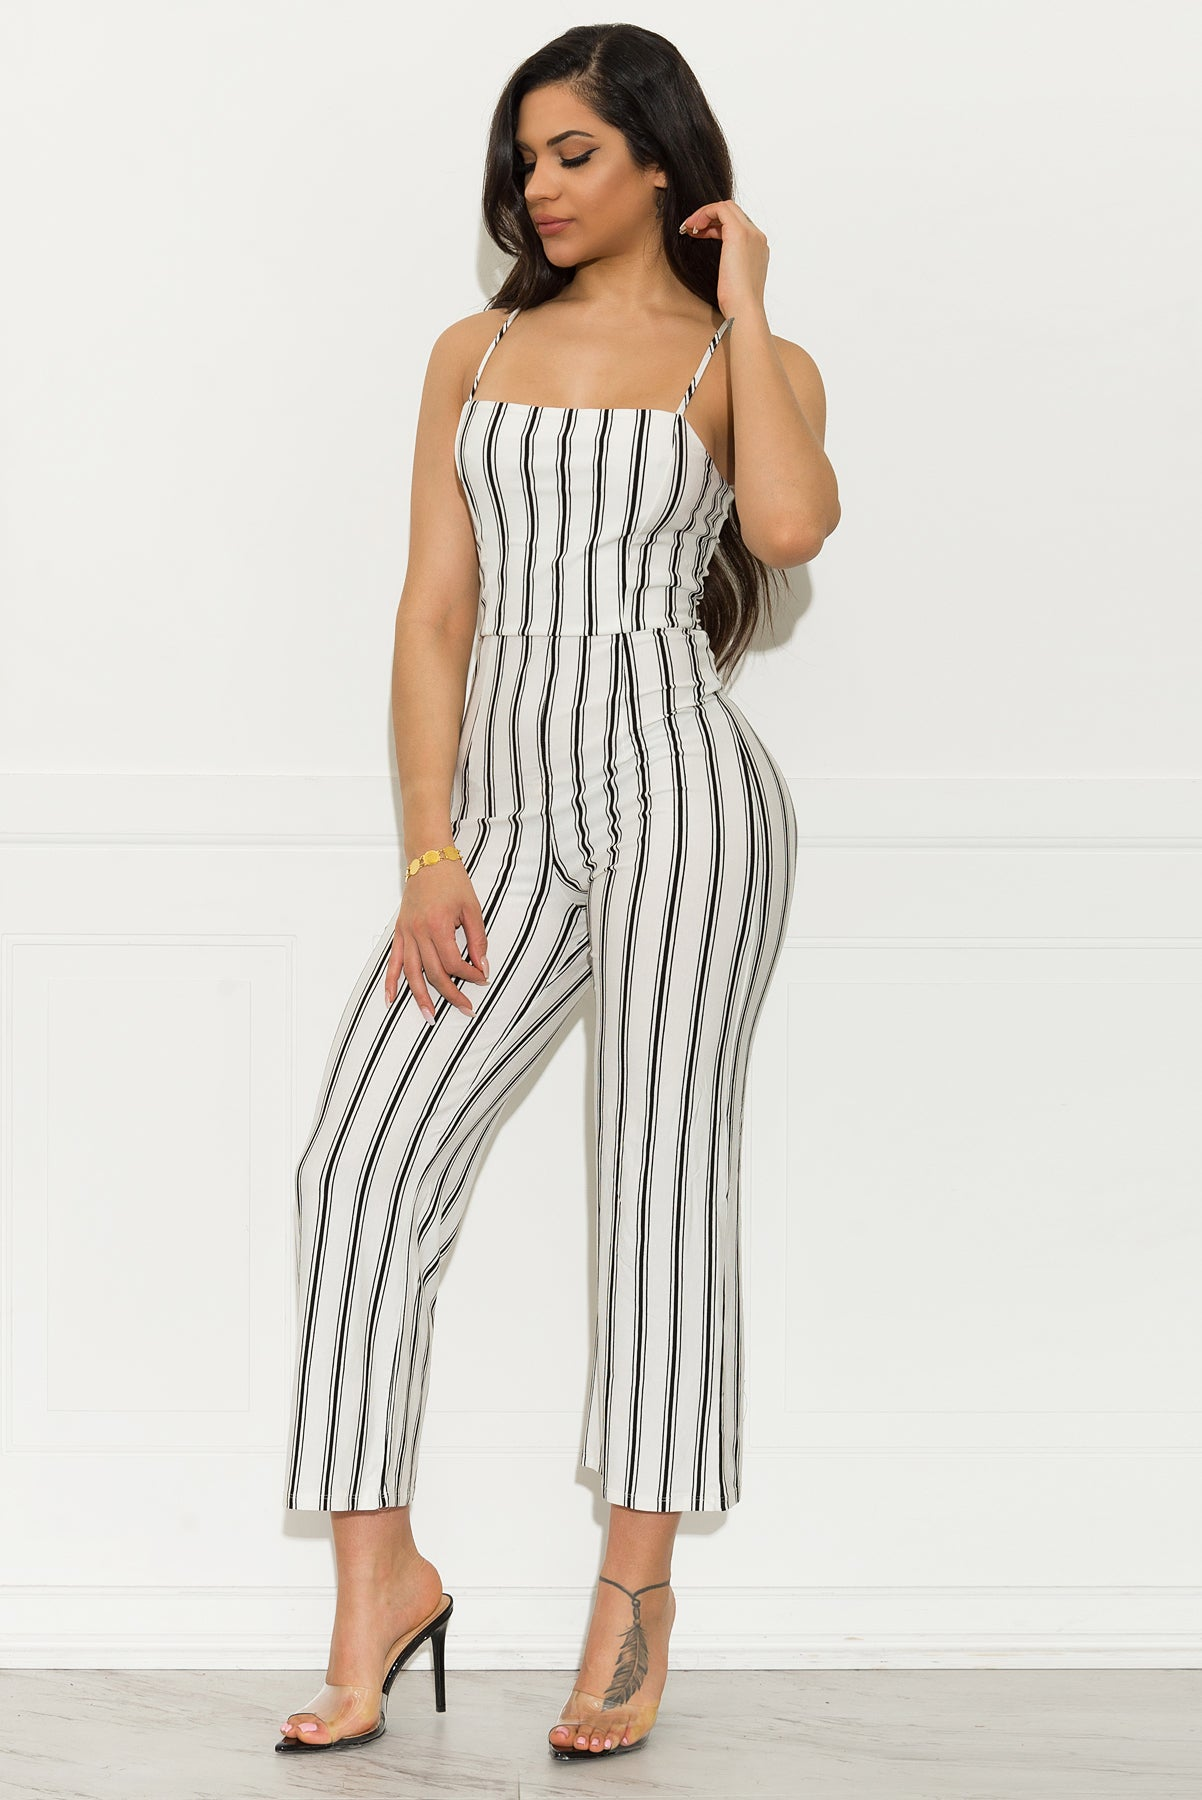 Nathalie Striped Jumpsuit - White